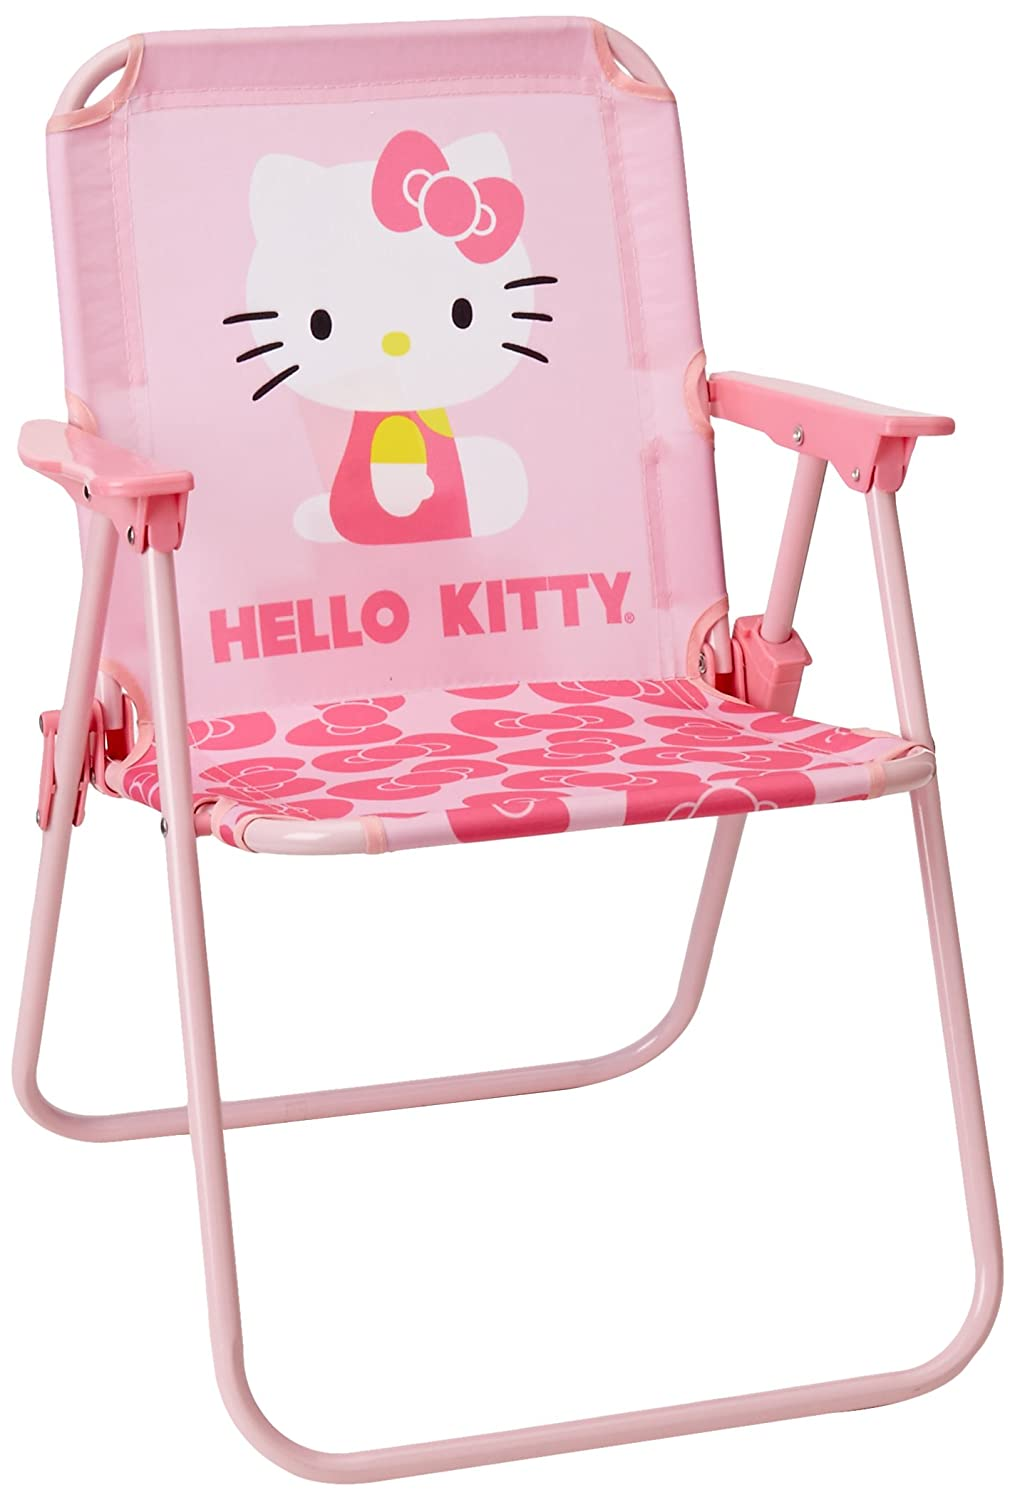 Hello kitty chair - Amazon Com Hello Kitty Youth Flat Chair Childrens Folding Chairs Sports Outdoors